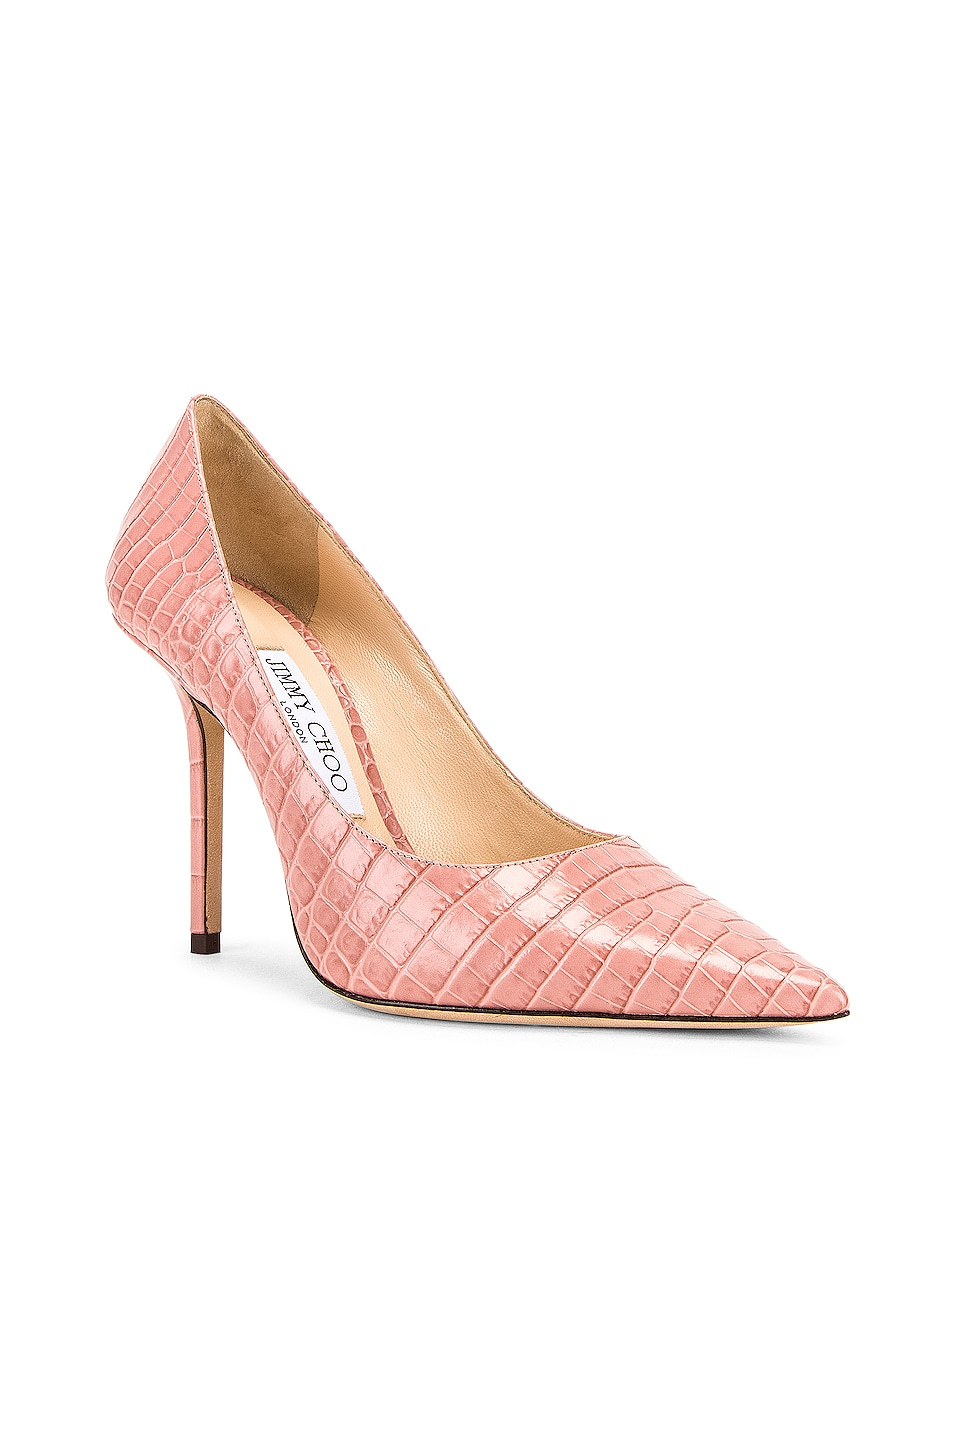 Image 2 of Jimmy Choo Love 100 Croc Embossed Leather Heel in Blush